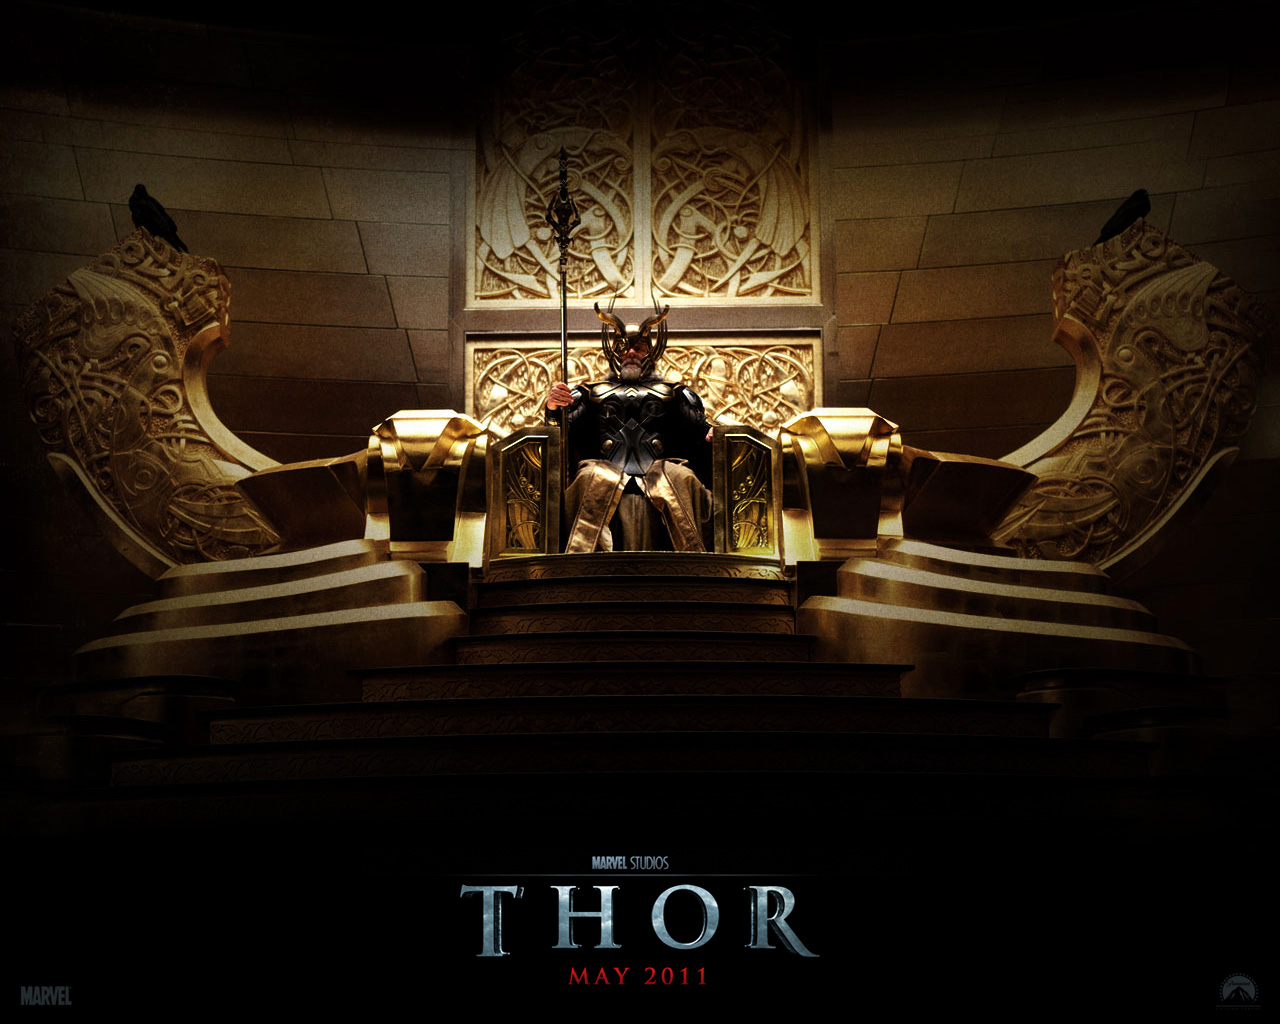 Heimdal Hd Wallpaper: THOR MOVIE WALLPAPERS & POSTERS (2011